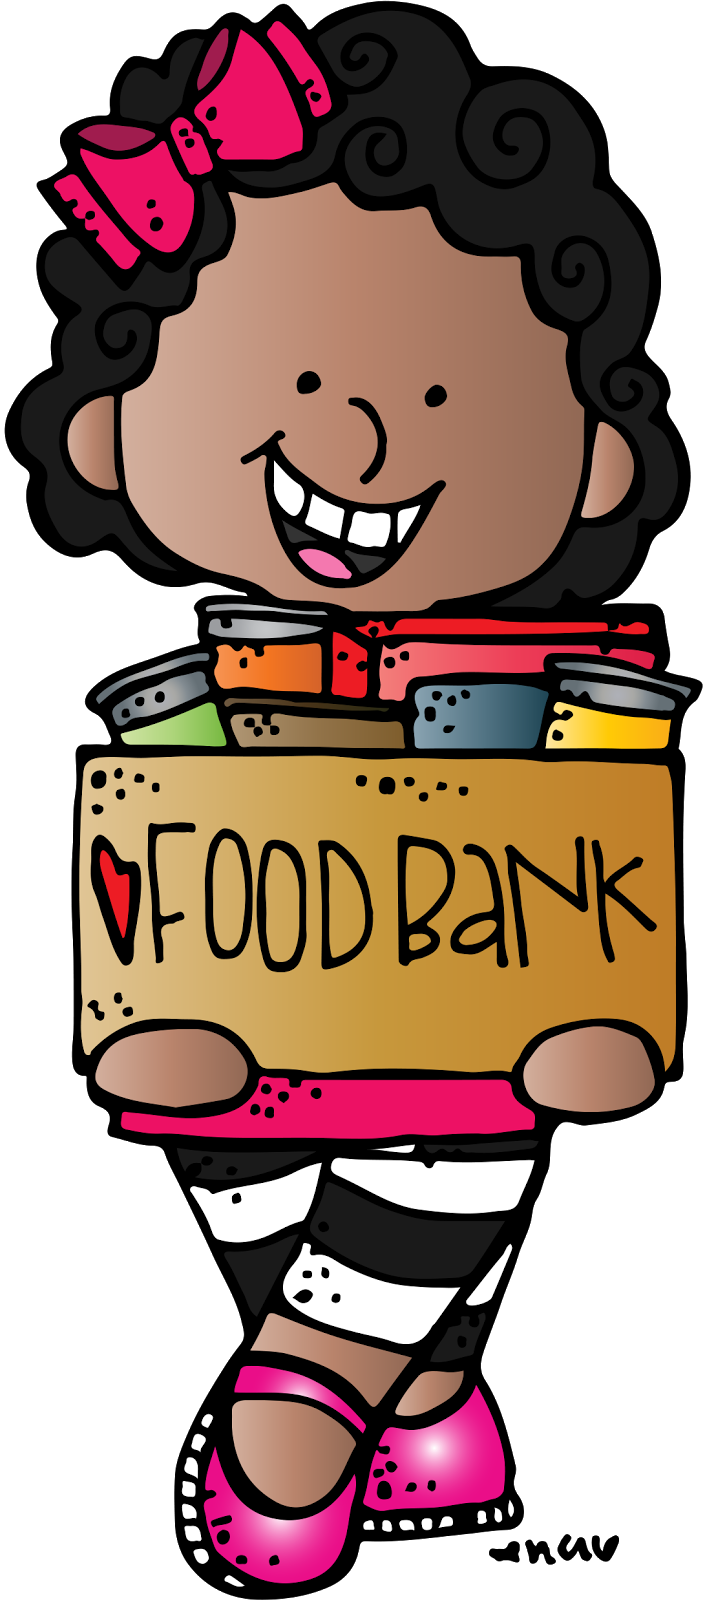 Clipart for food bank image download Melonheadz LDS illustrating | Melonheadz | Pinterest | Clip art, Lds ... image download